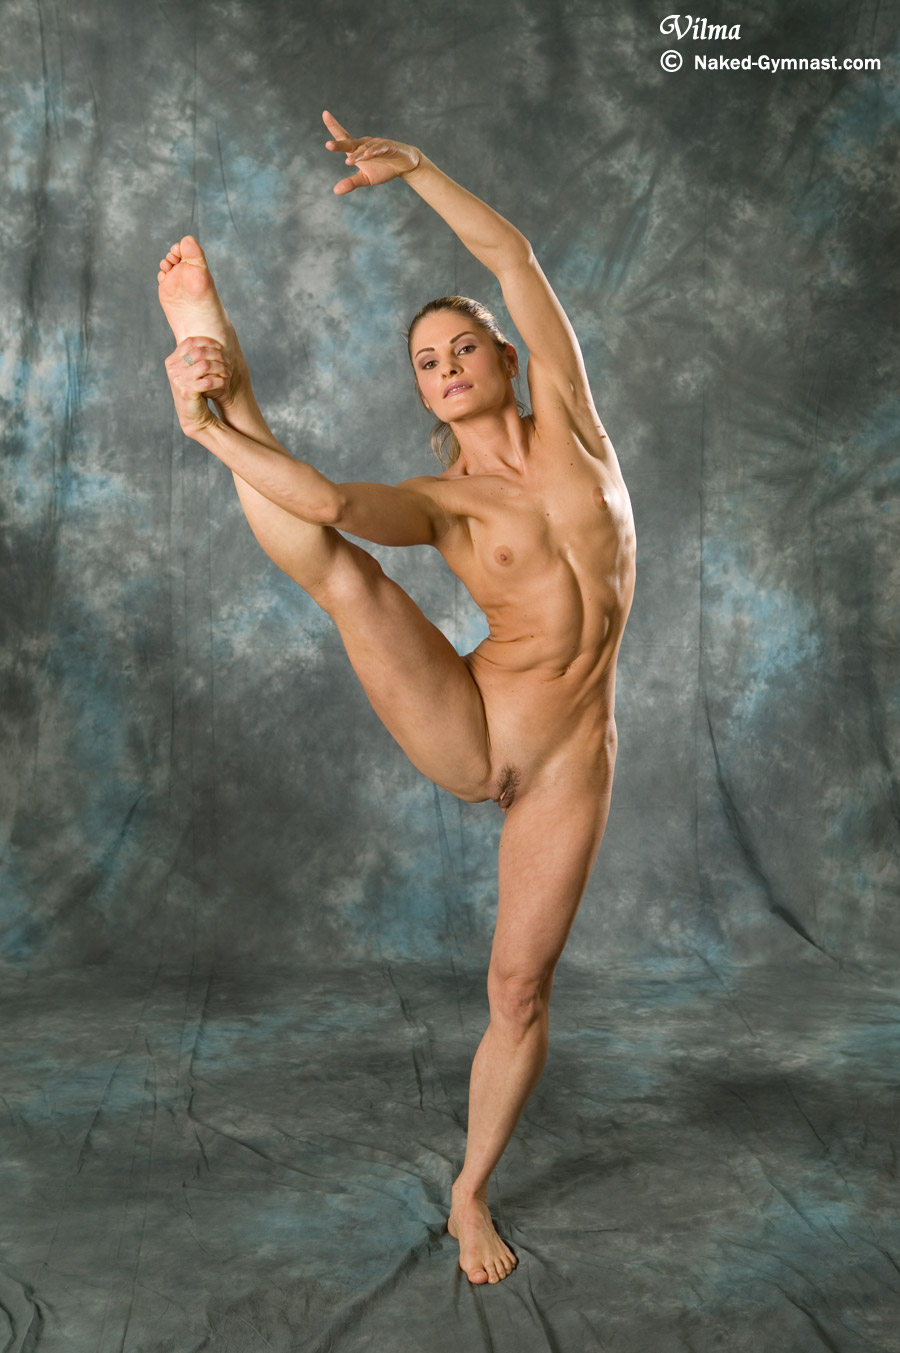 Nude Female Gymnastics 12